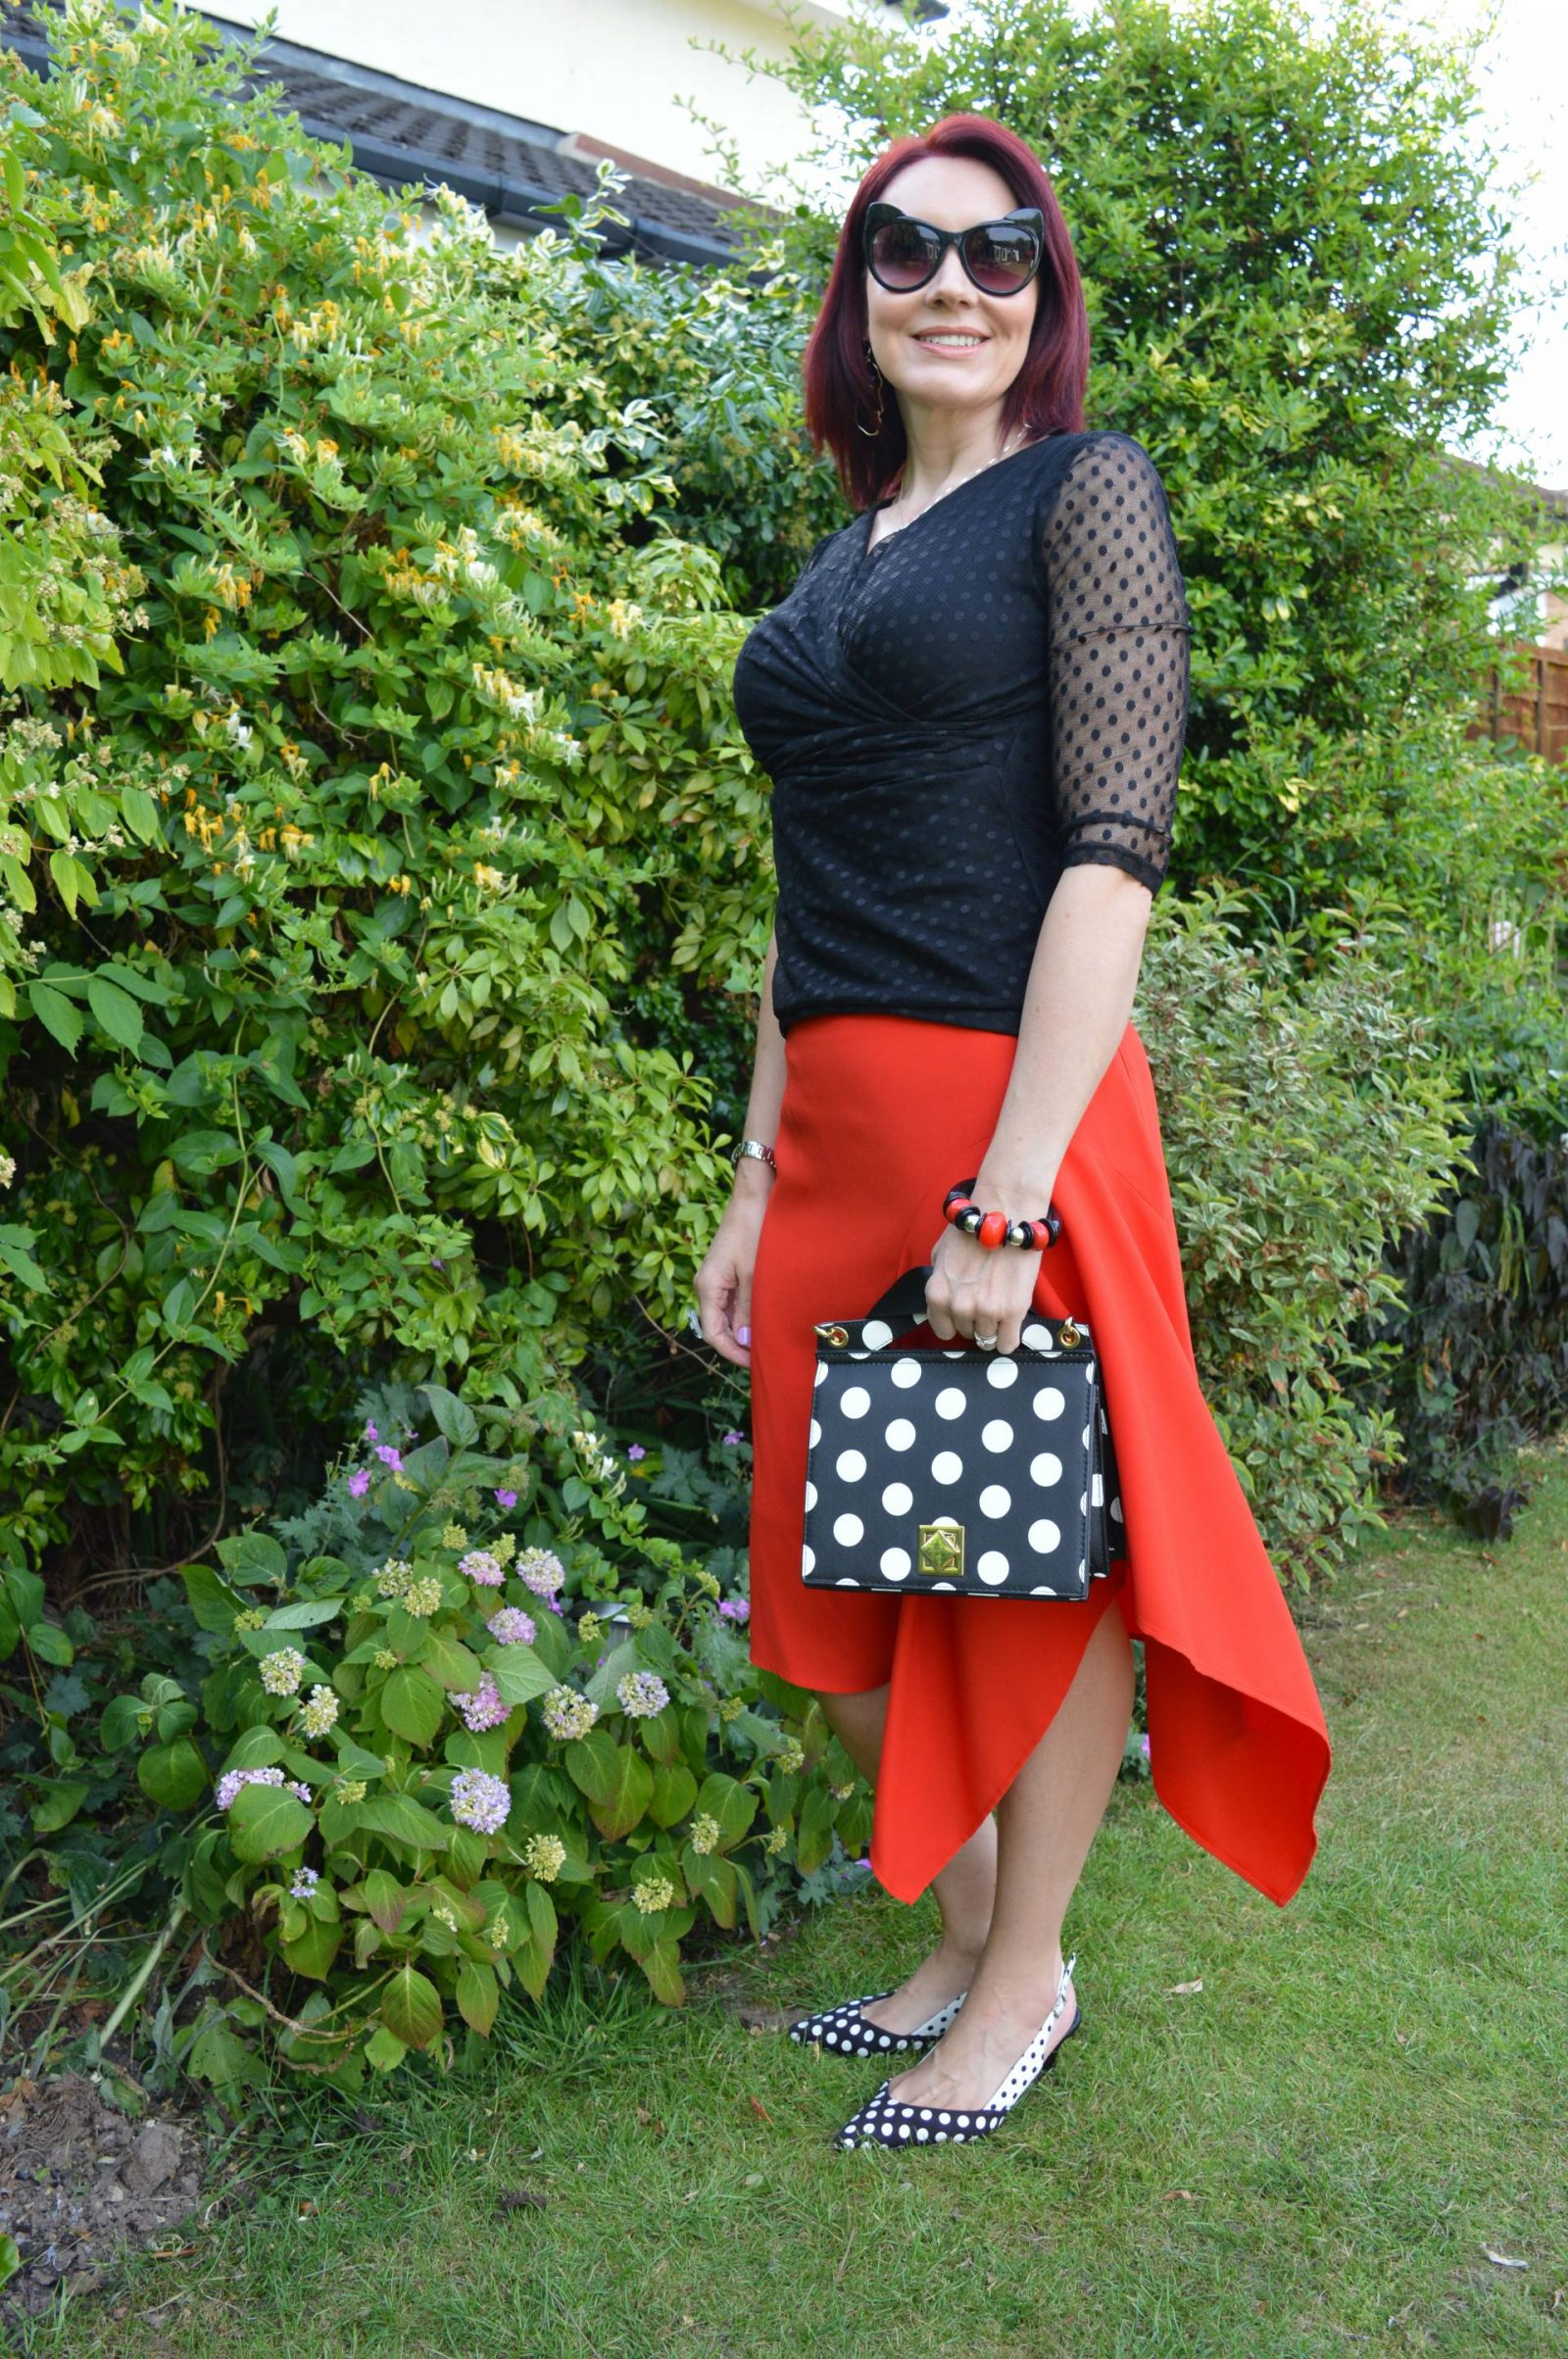 Black and white polka dots with an asymmetric skirt